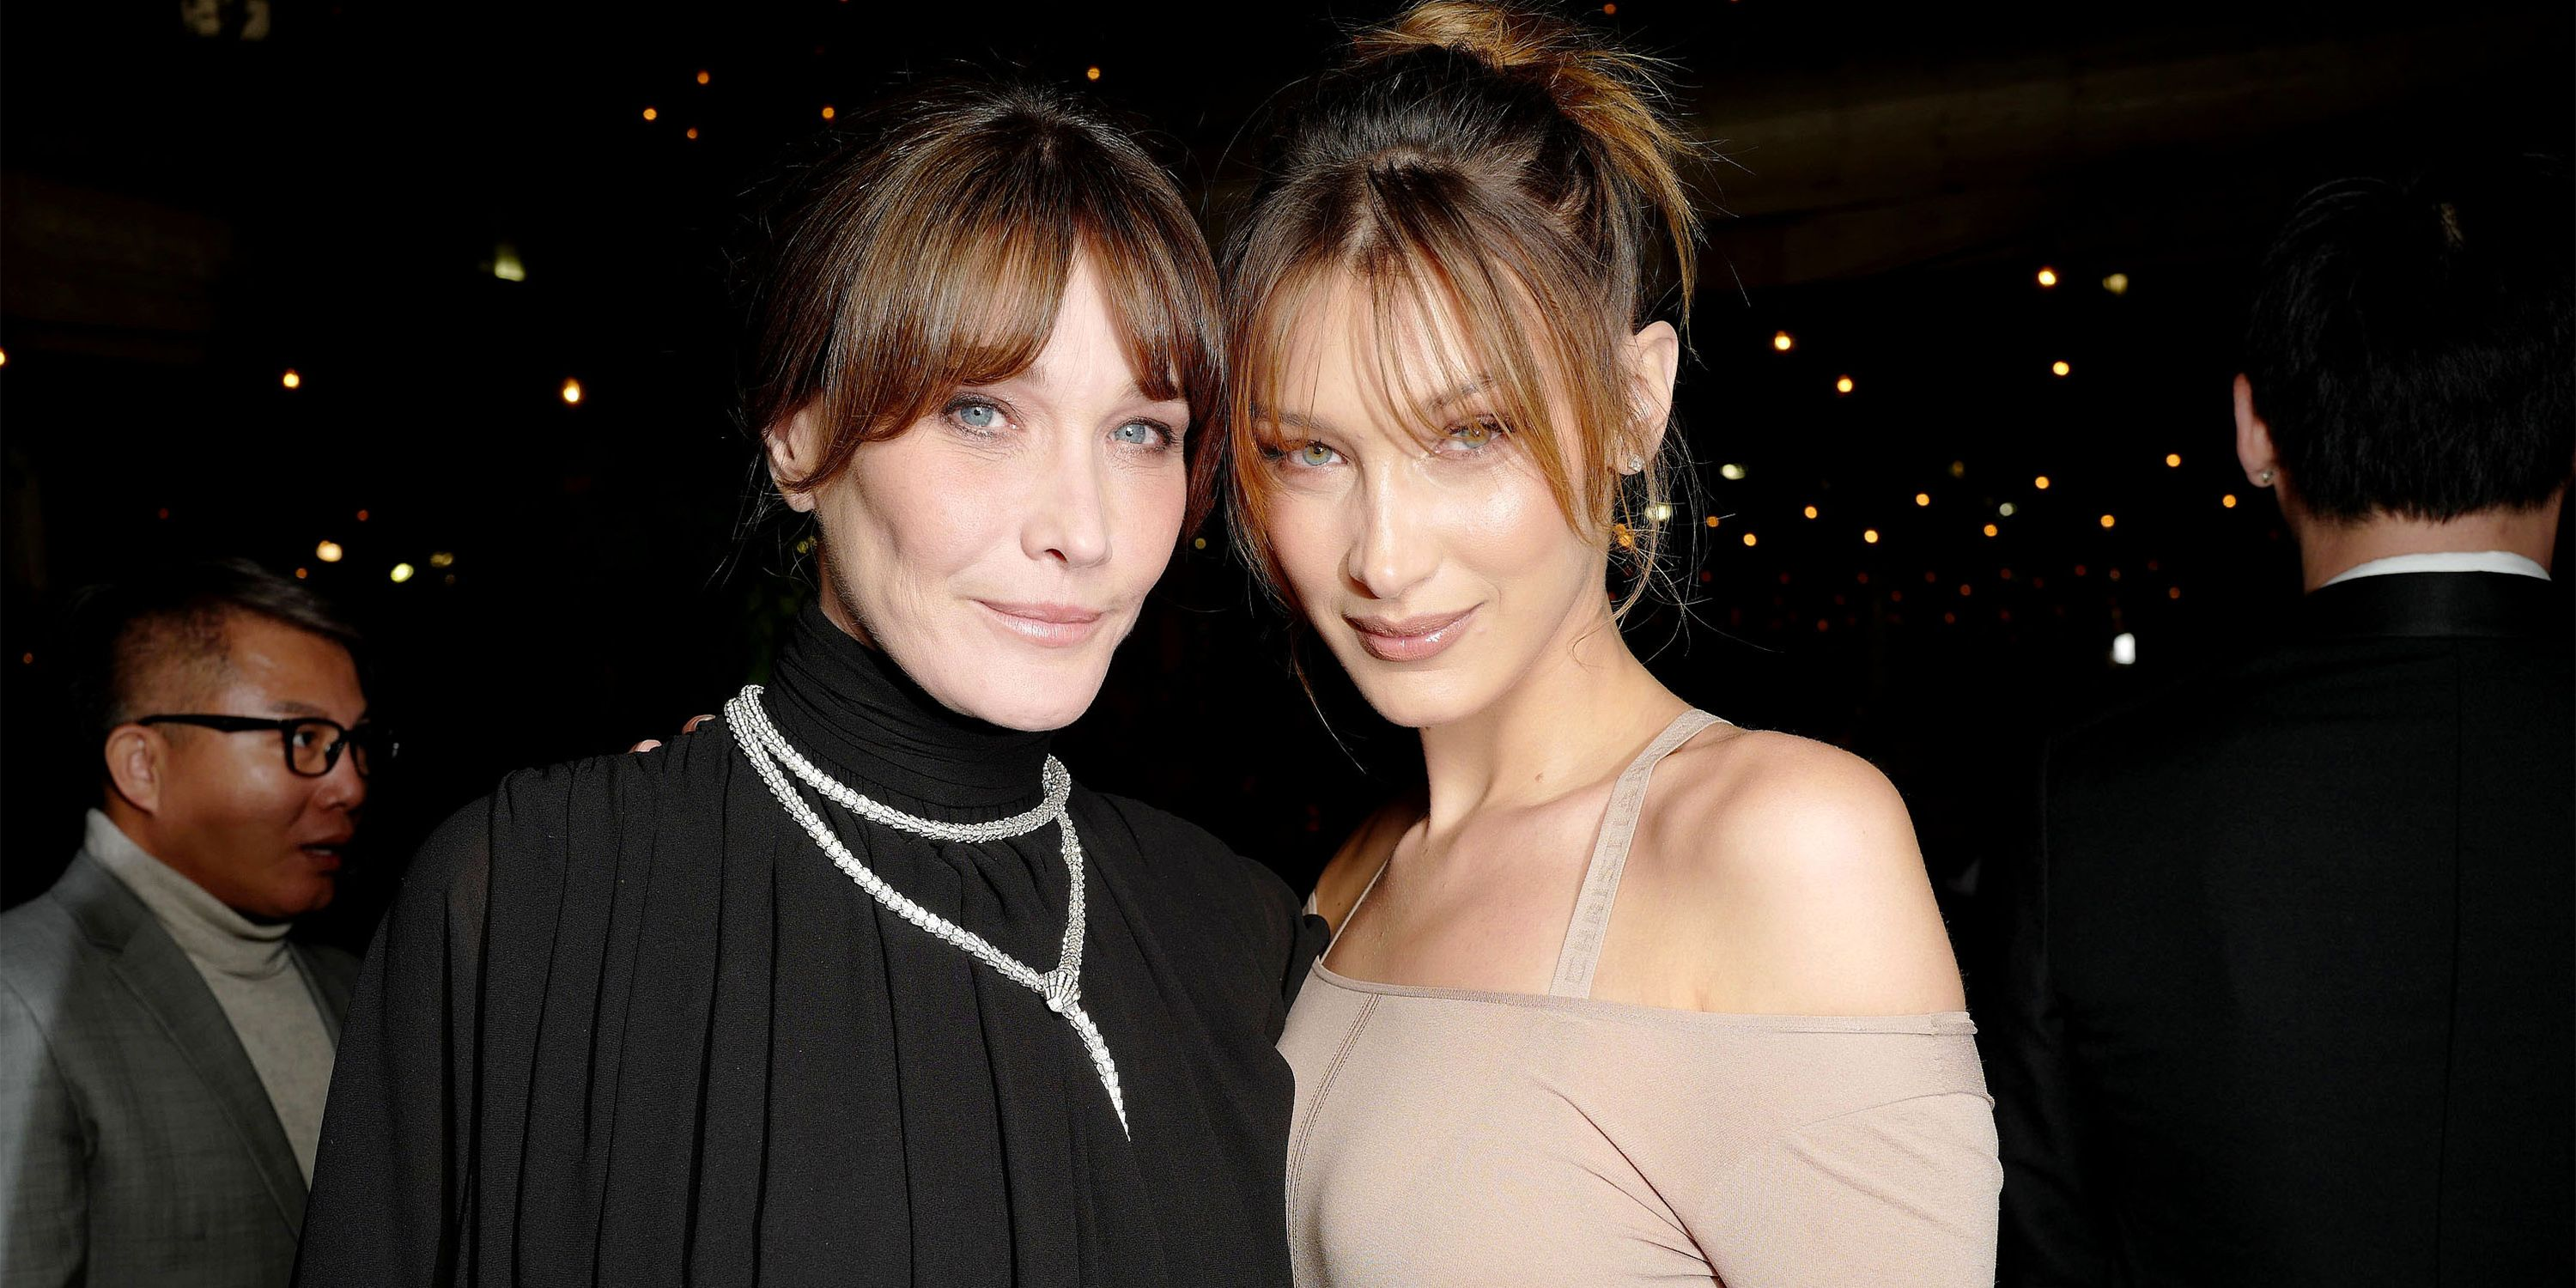 Bella Hadid And Carla Bruni Look Identical In Instagram Photo At Cannes Film Festival